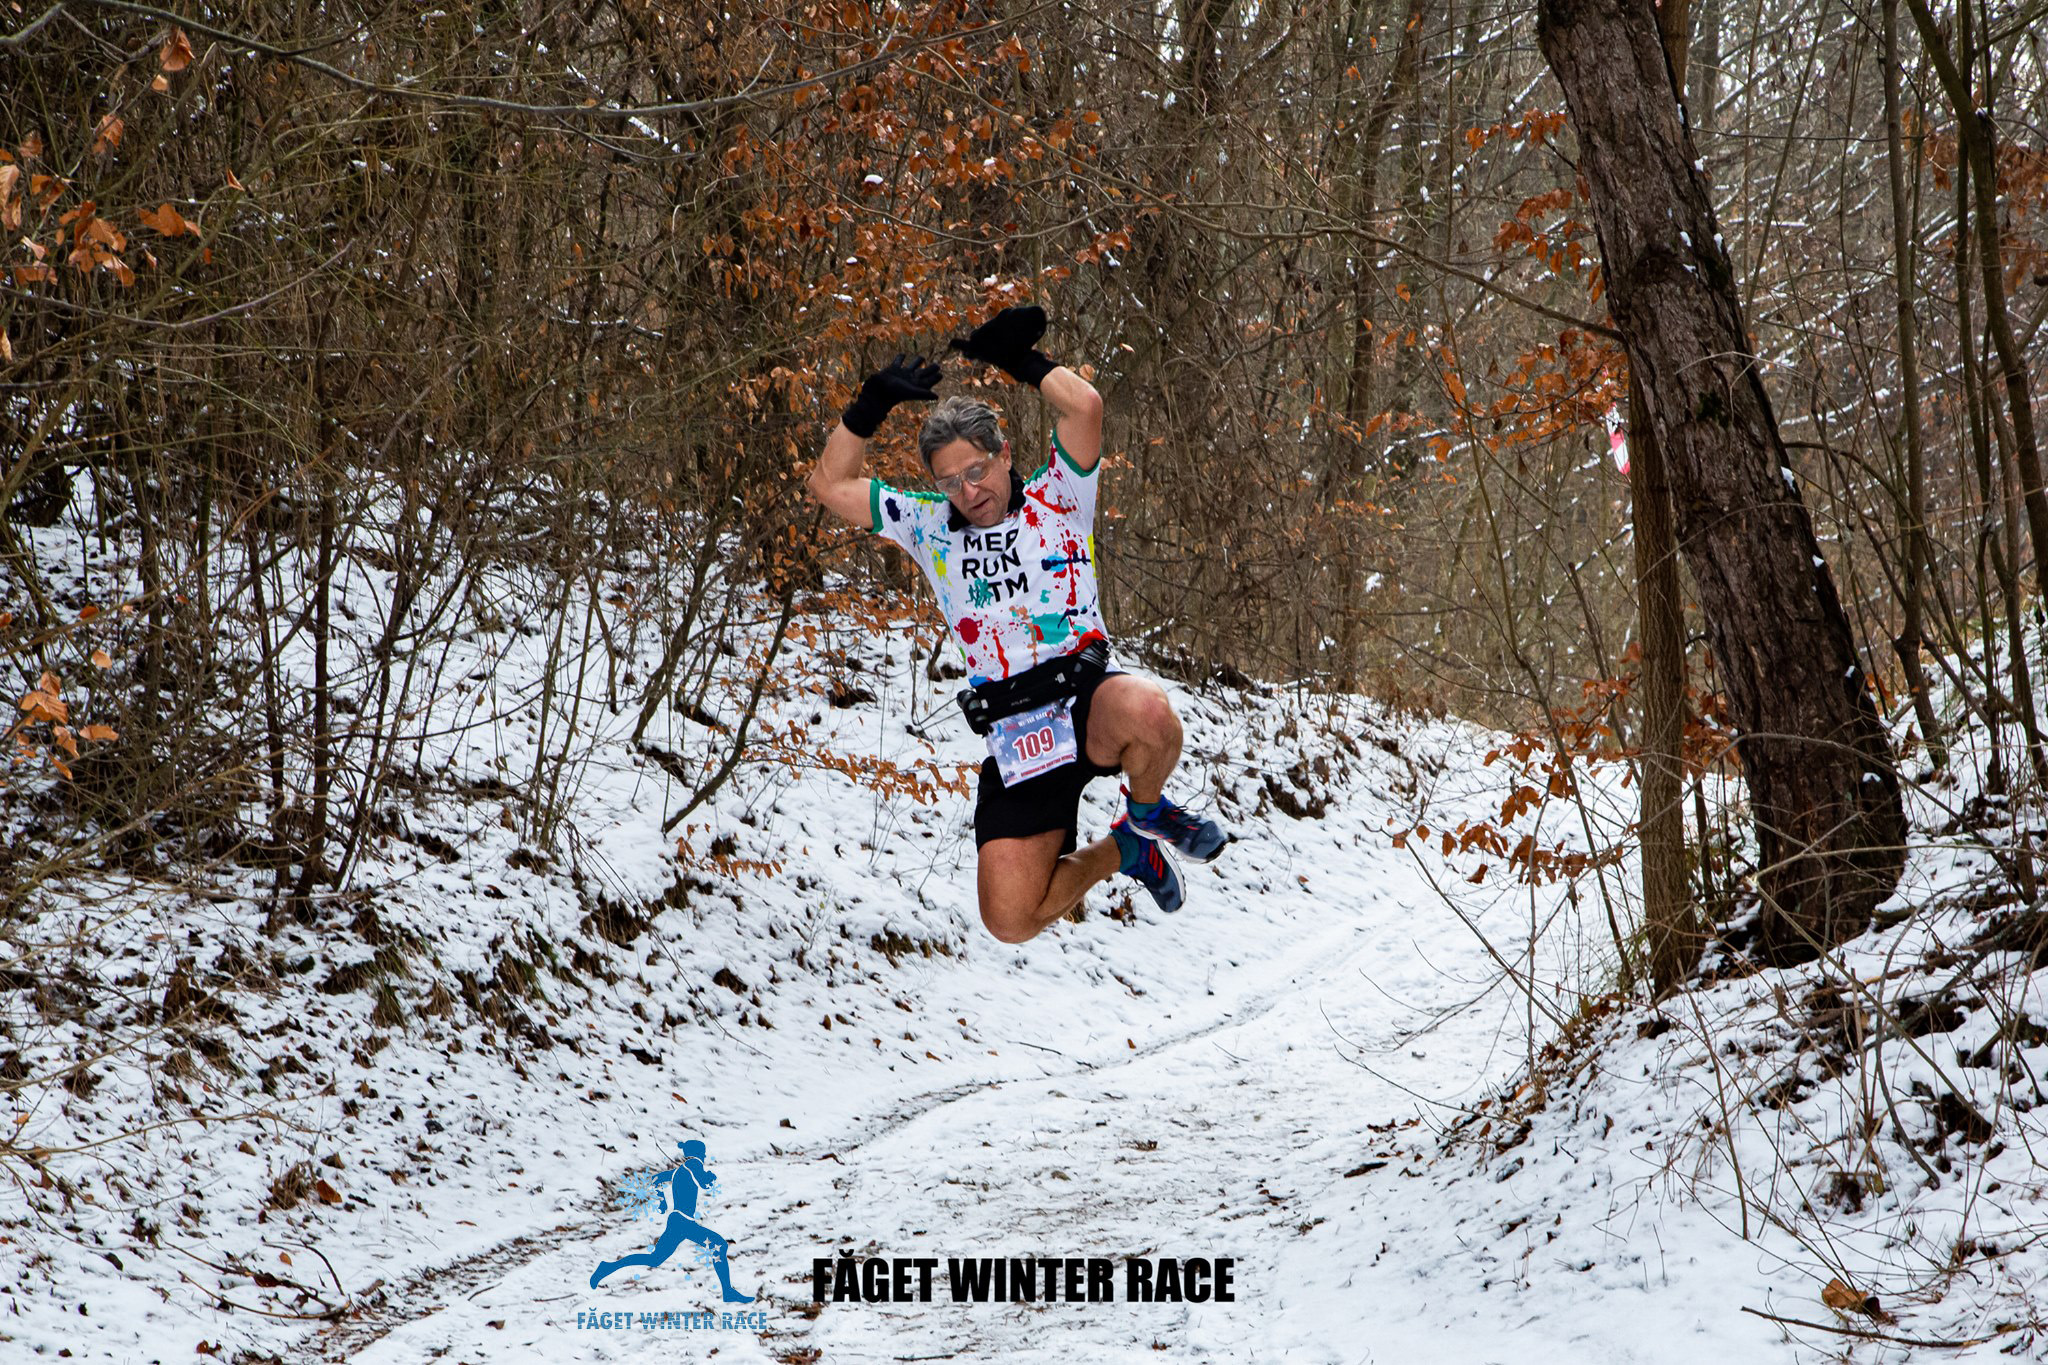 Faget Winter Race 2021 Cluj-Napoca